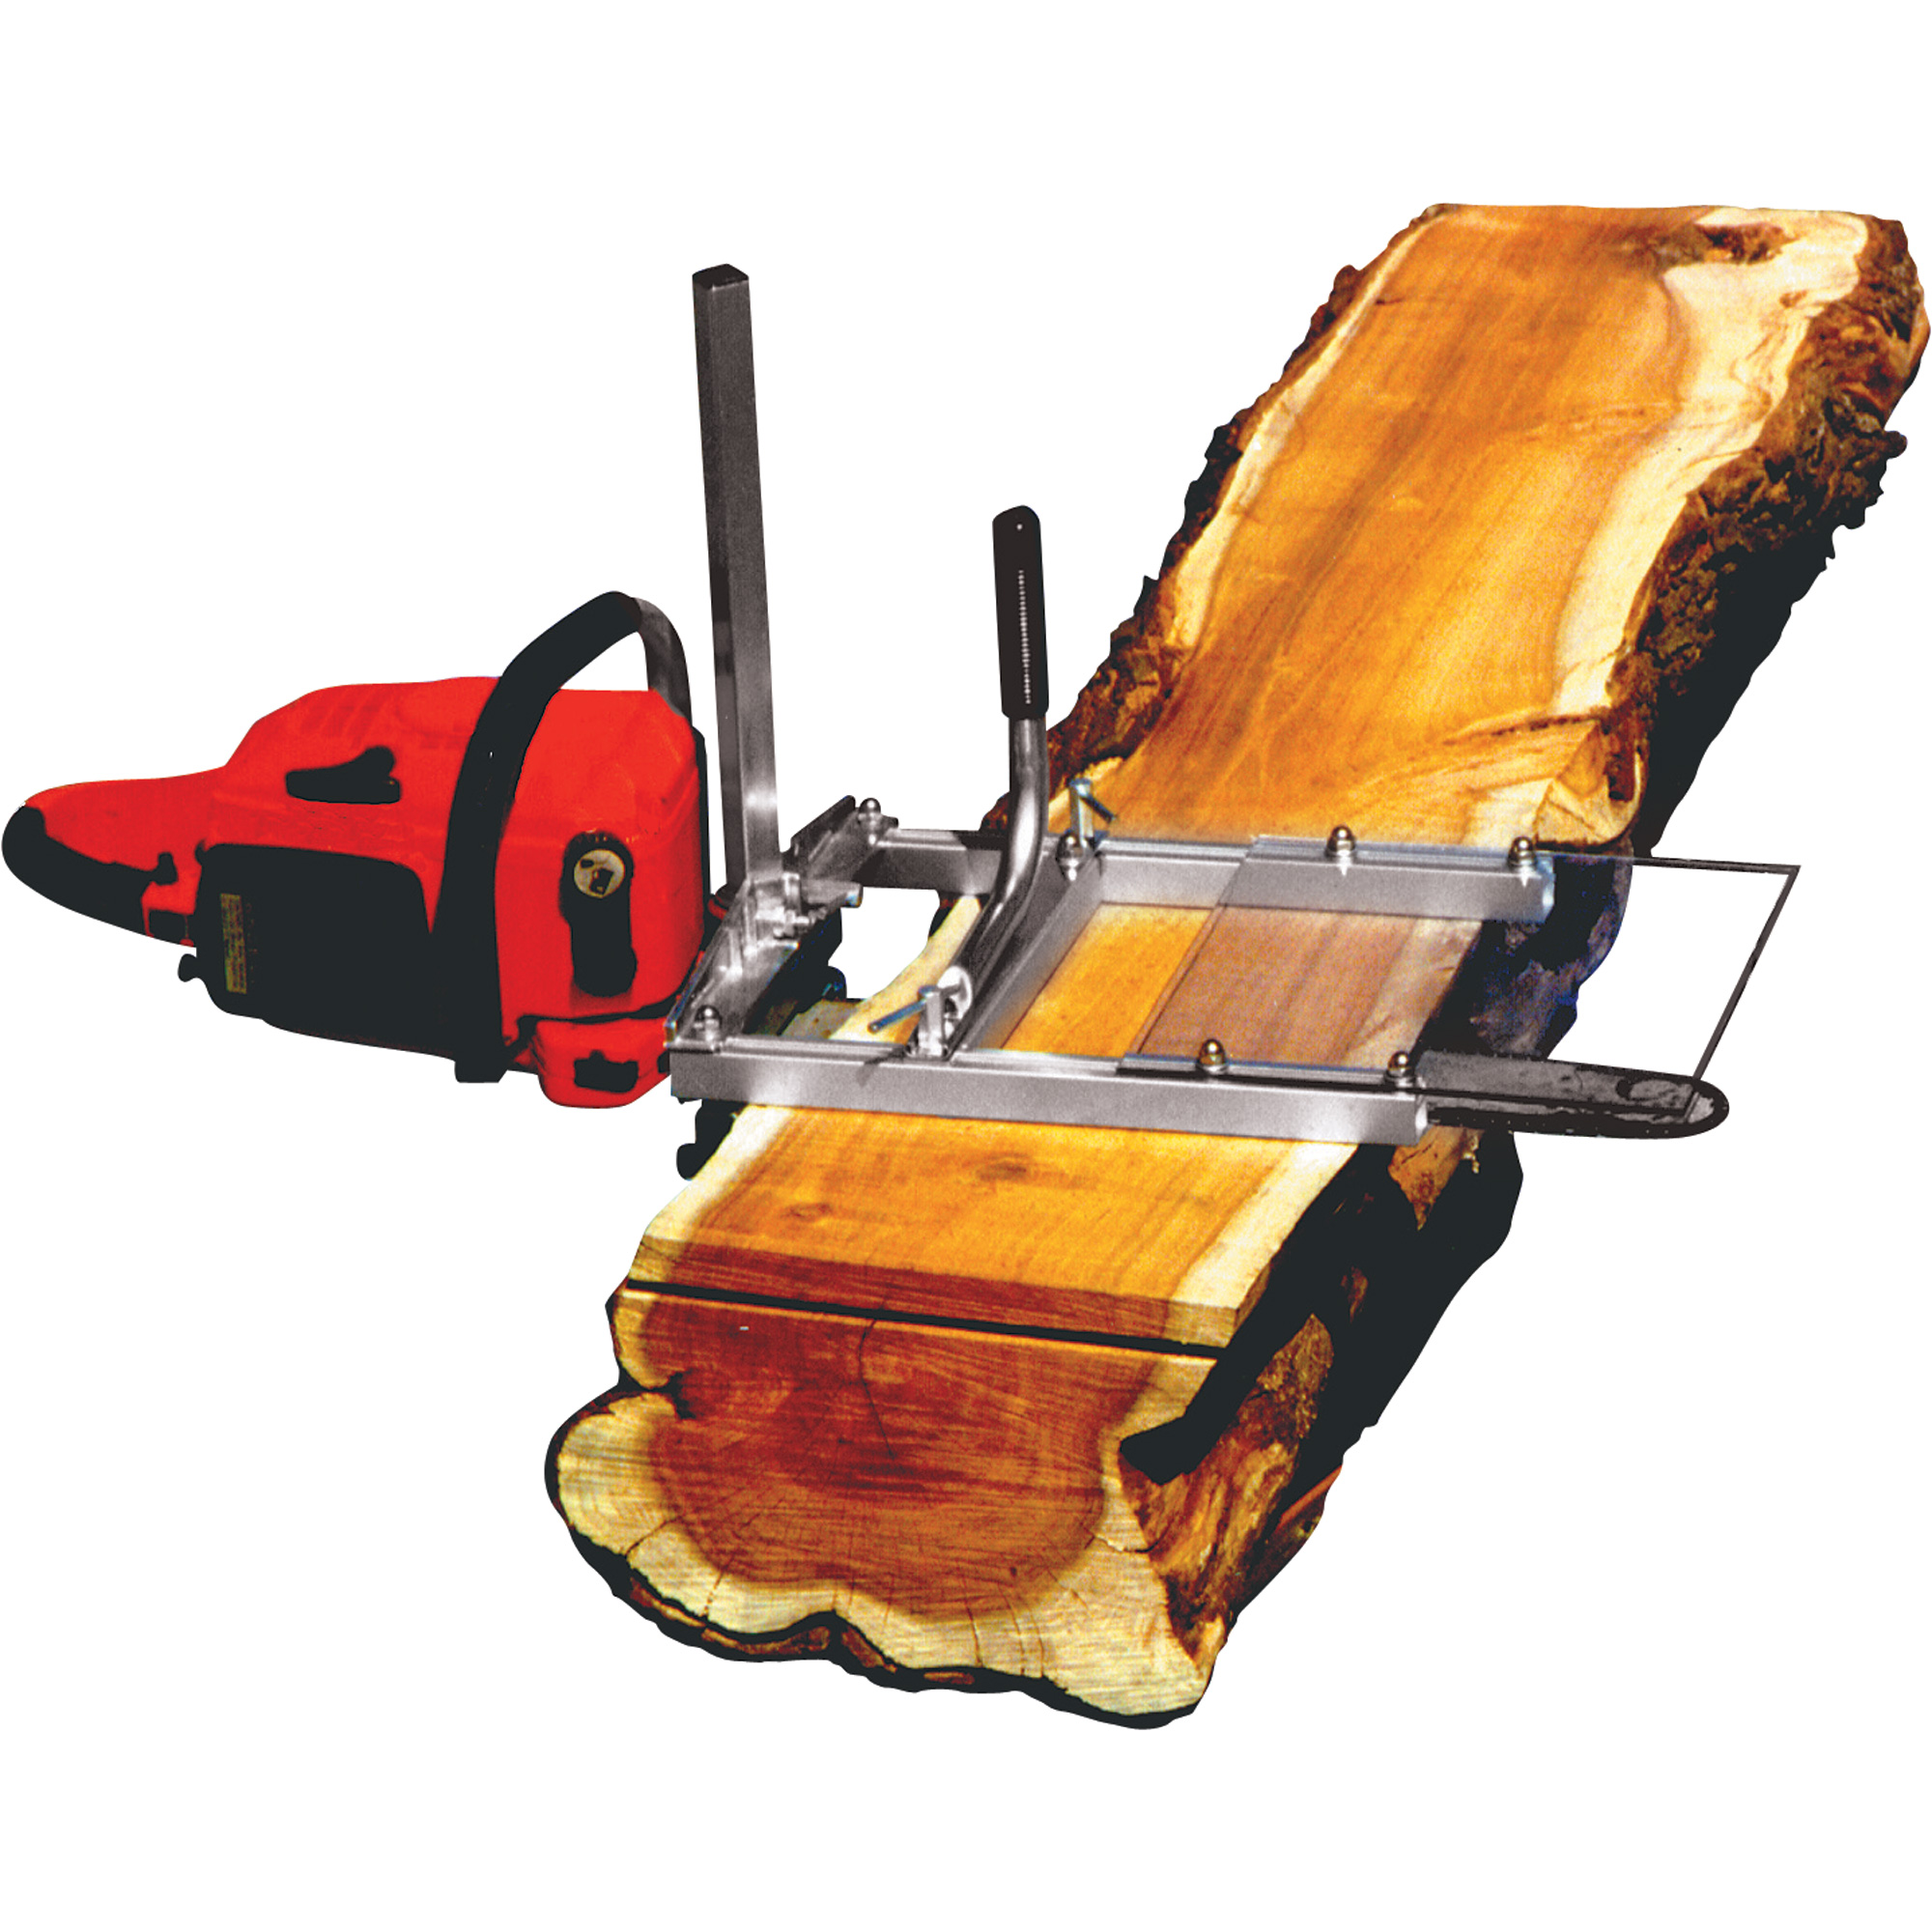 Chainsaw clipart carpentry tool Perfect the or attachment The